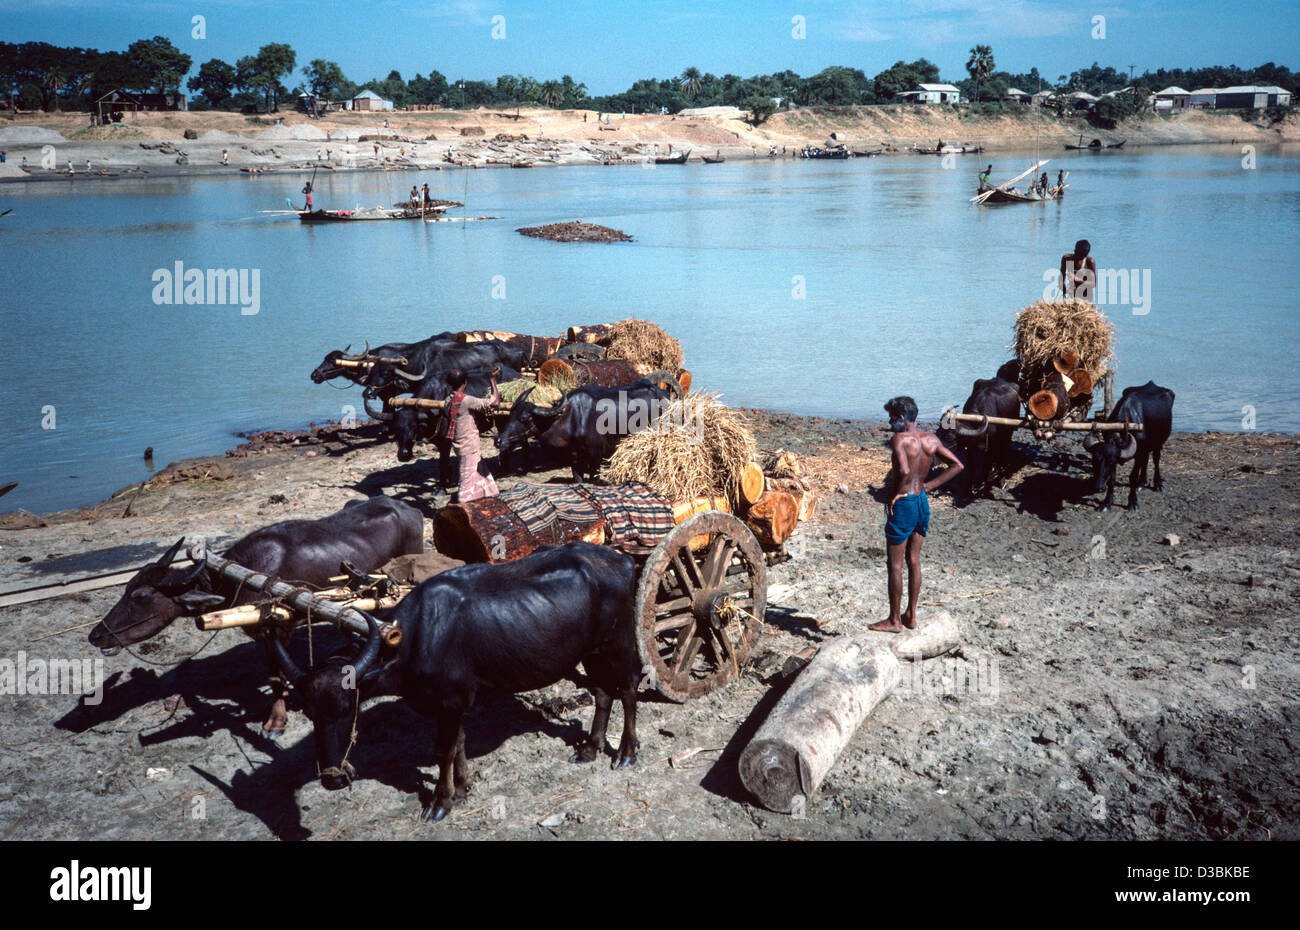 Hardwood logs, possibly illegally felled, loaded onto buffalo carts after being brought down river by boat. Tangail, - Stock Image